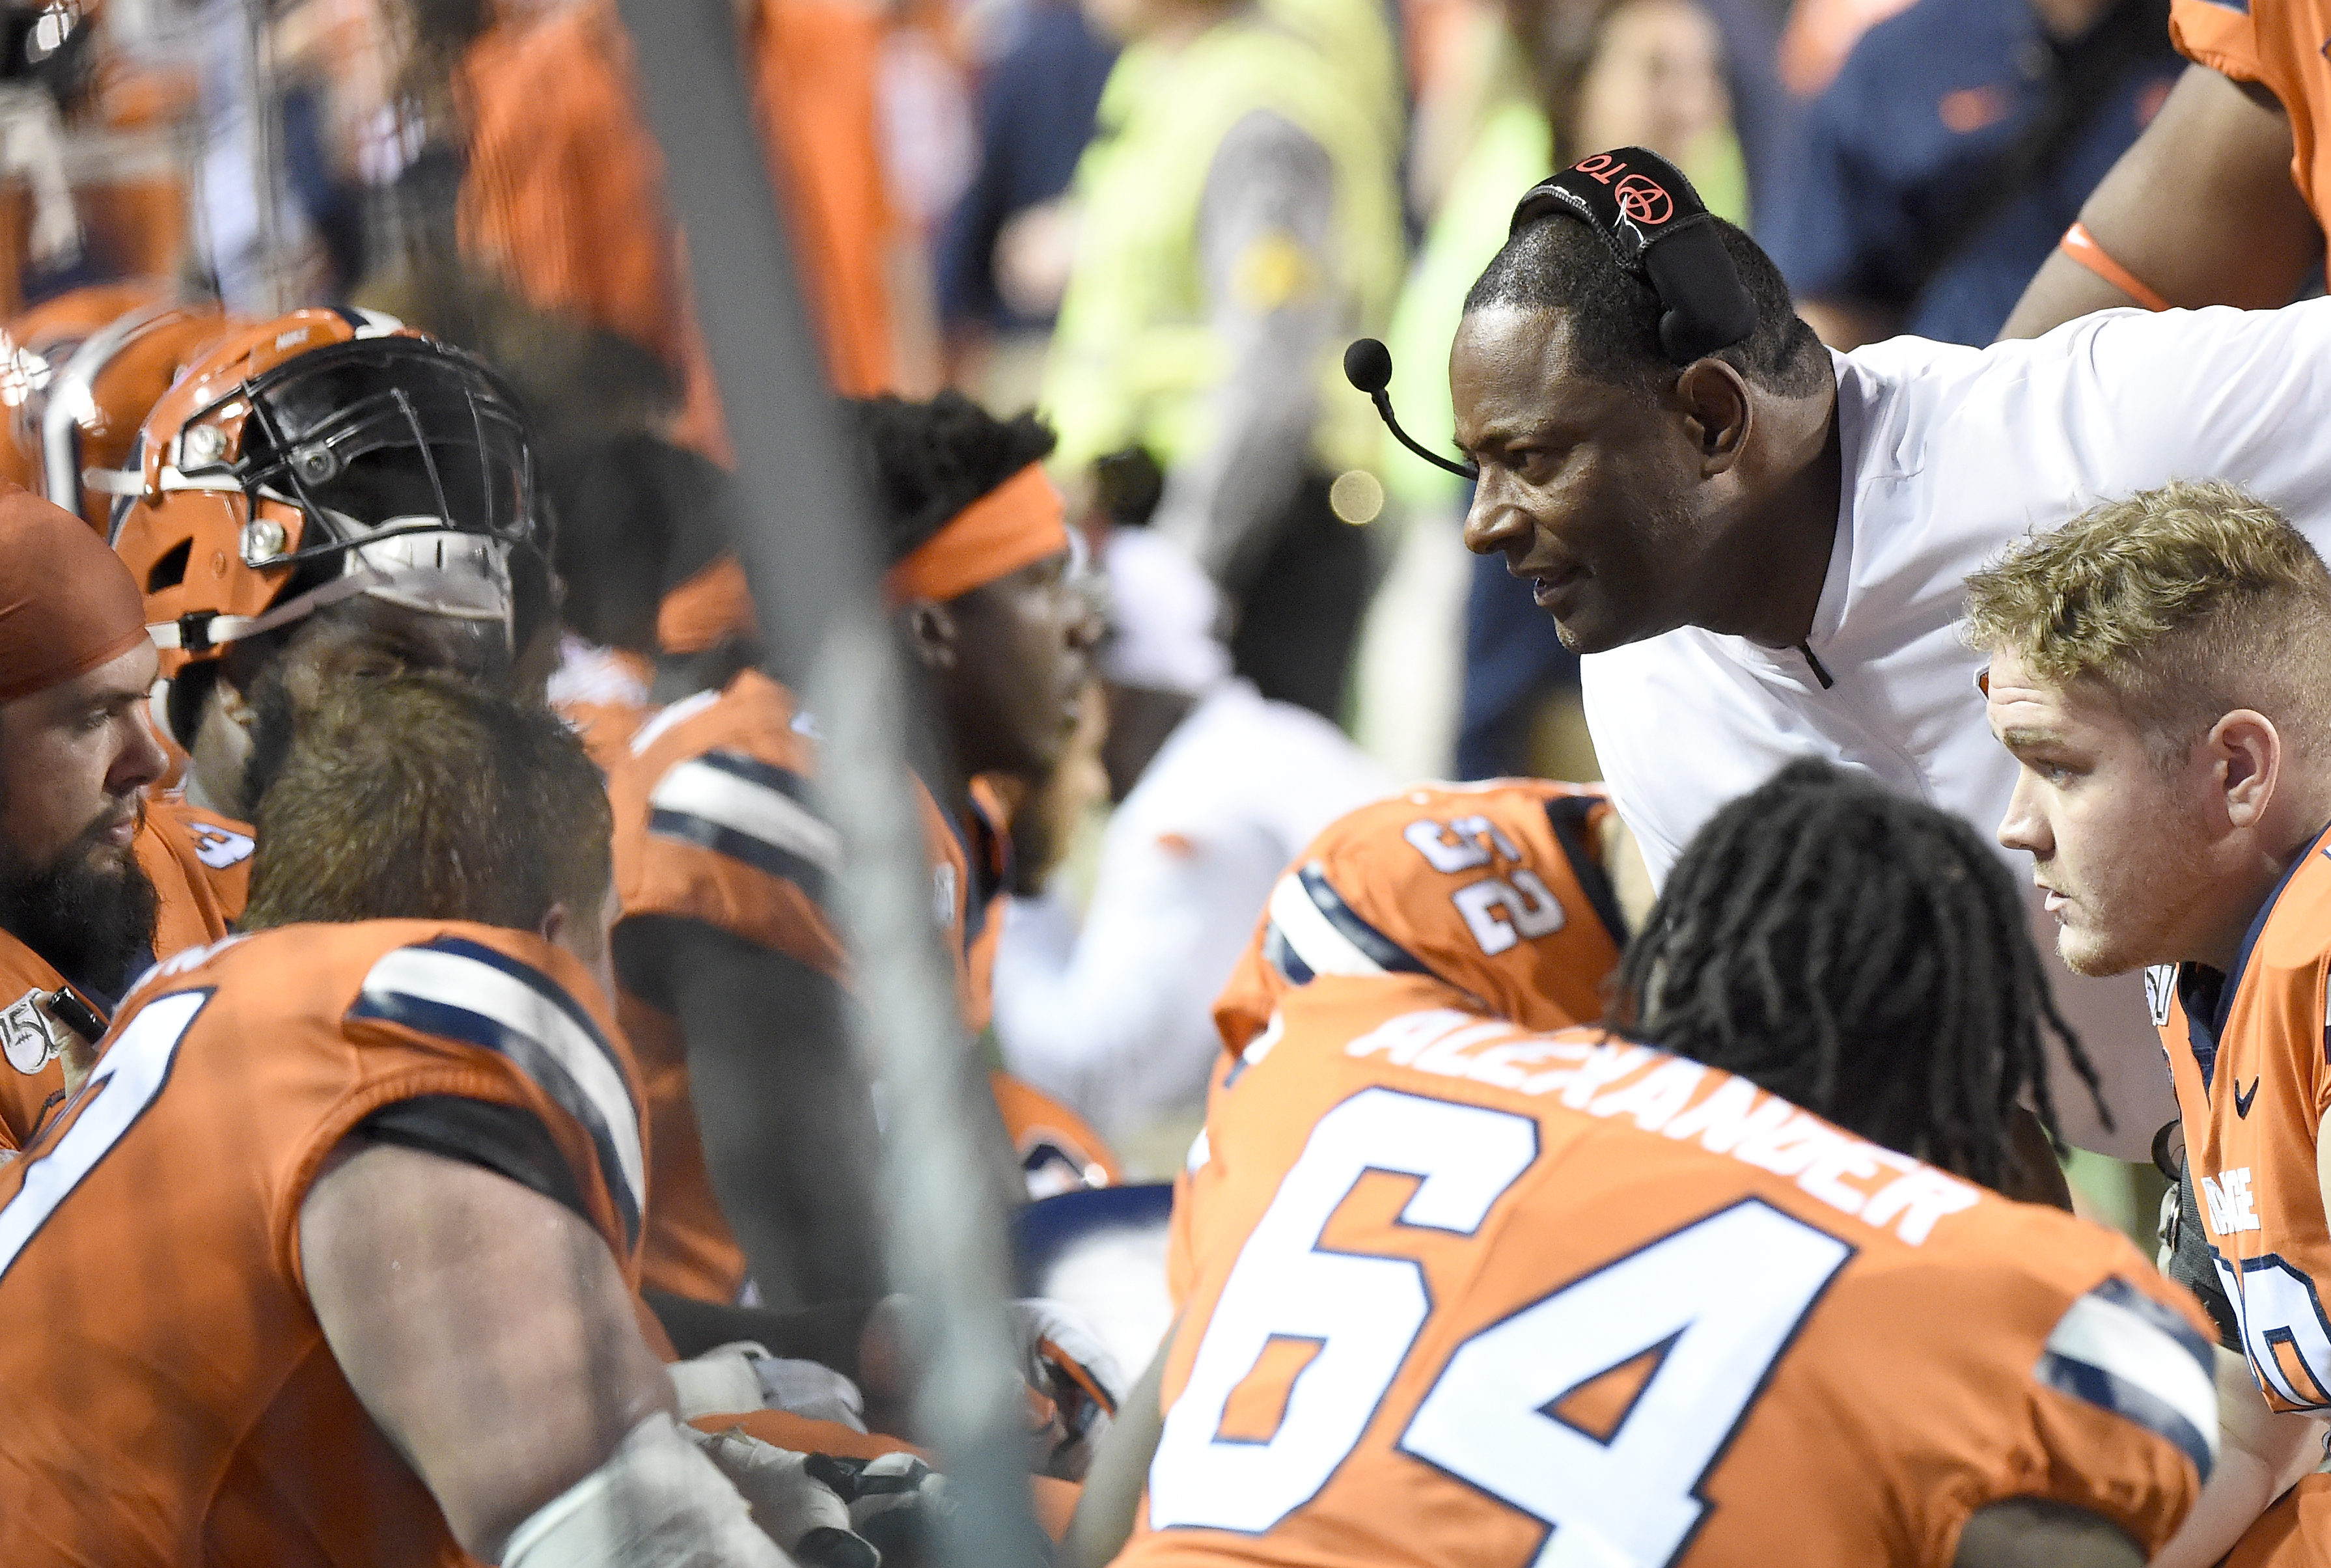 Dino Babers is putting the offensive line under the microscope. Are changes coming?